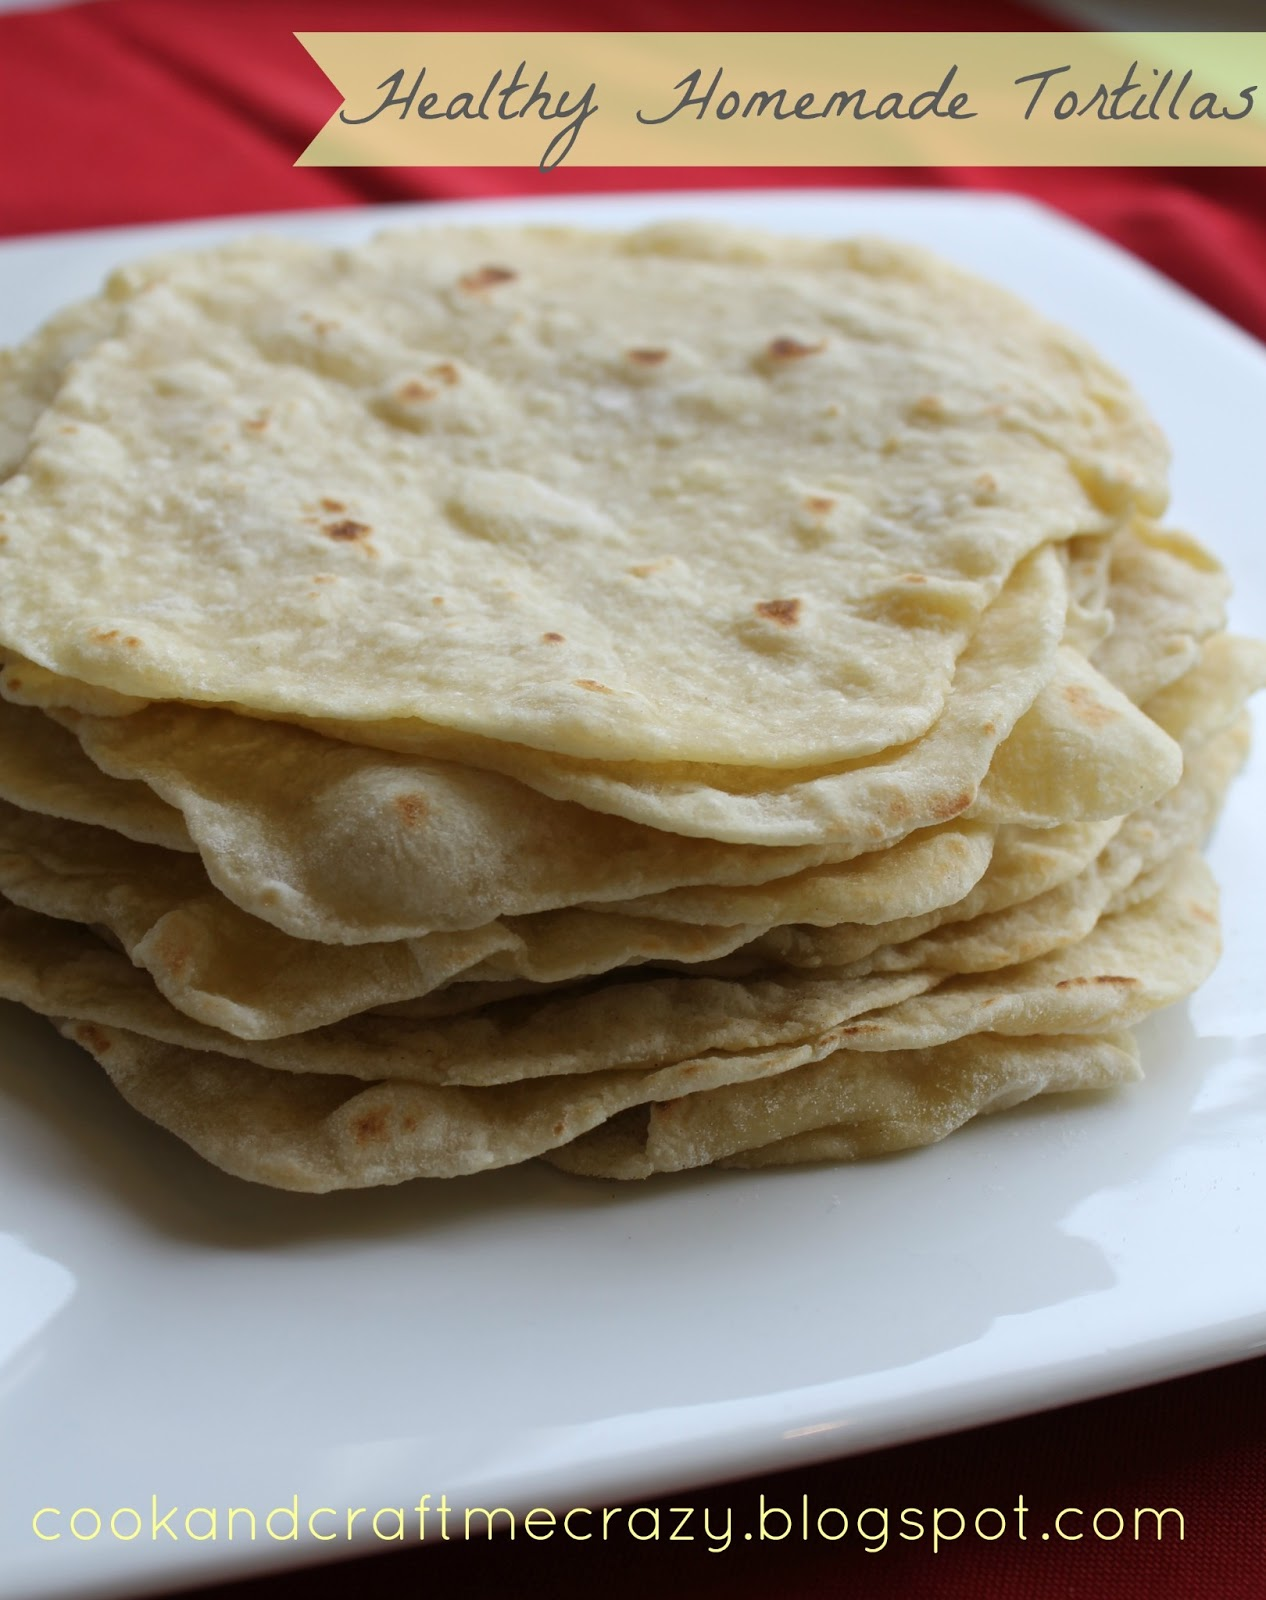 Cook and Craft Me Crazy: Healthy Homemade Tortillas